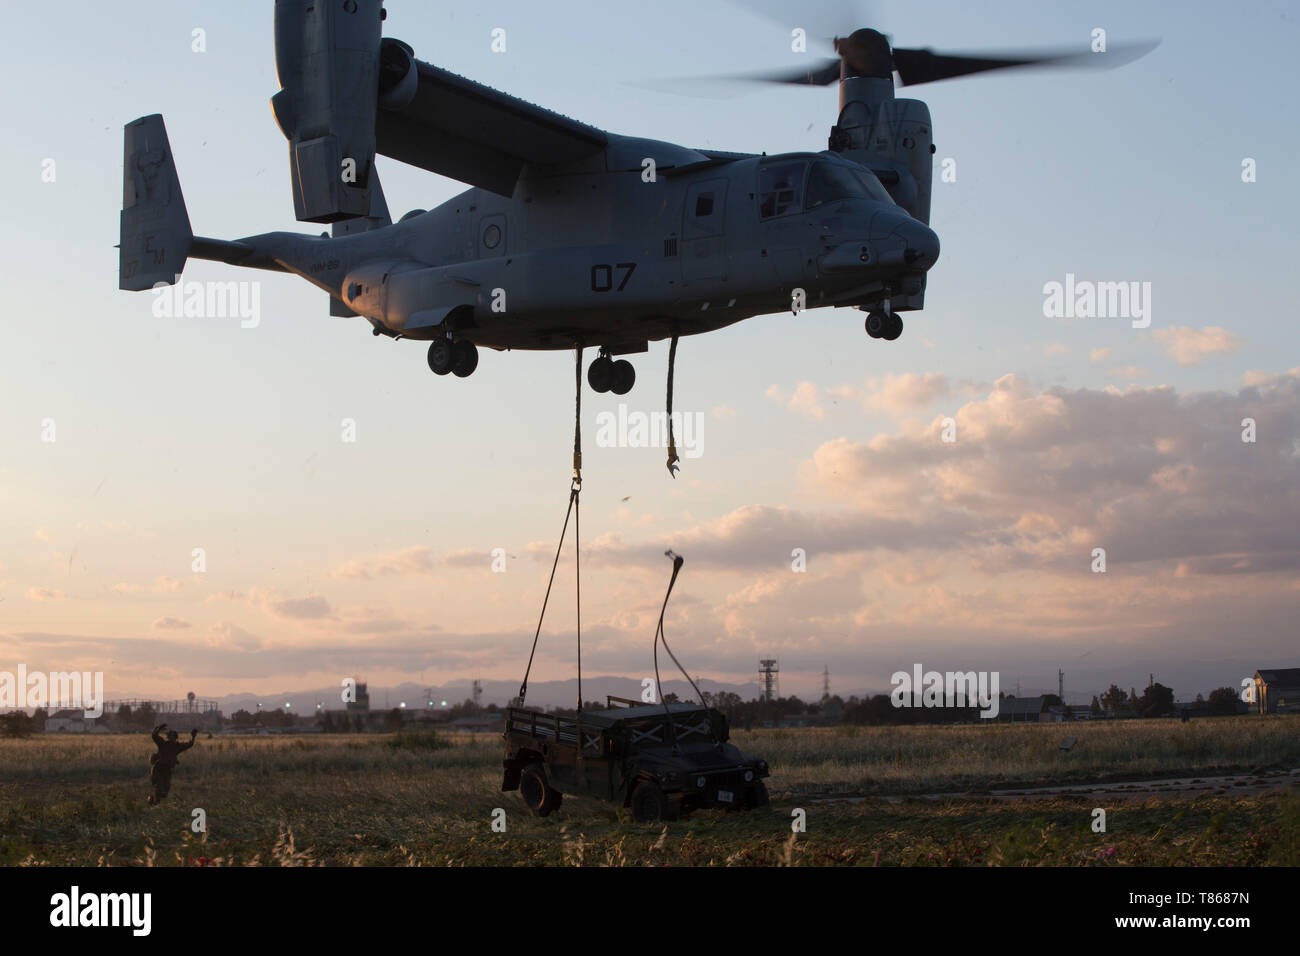 A U.S. Marine Corps MV-22B Osprey with Special Purpose Marine Air-Ground Task Force-Crisis Response-Africa 19.2, Marine Forces Europe and Africa, releases a humvee during external-lift training at Naval Air Station Sigonella, Italy, May 1, 2019. SPMAGTF-CR-AF is deployed to conduct crisis-response and theater-security operations in Africa and promote regional stability by conducting military-to-military training exercises throughout Europe and Africa. (U.S. Marine Corps photo by Staff Sgt. Mark E. Morrow Jr. ) Stock Photo